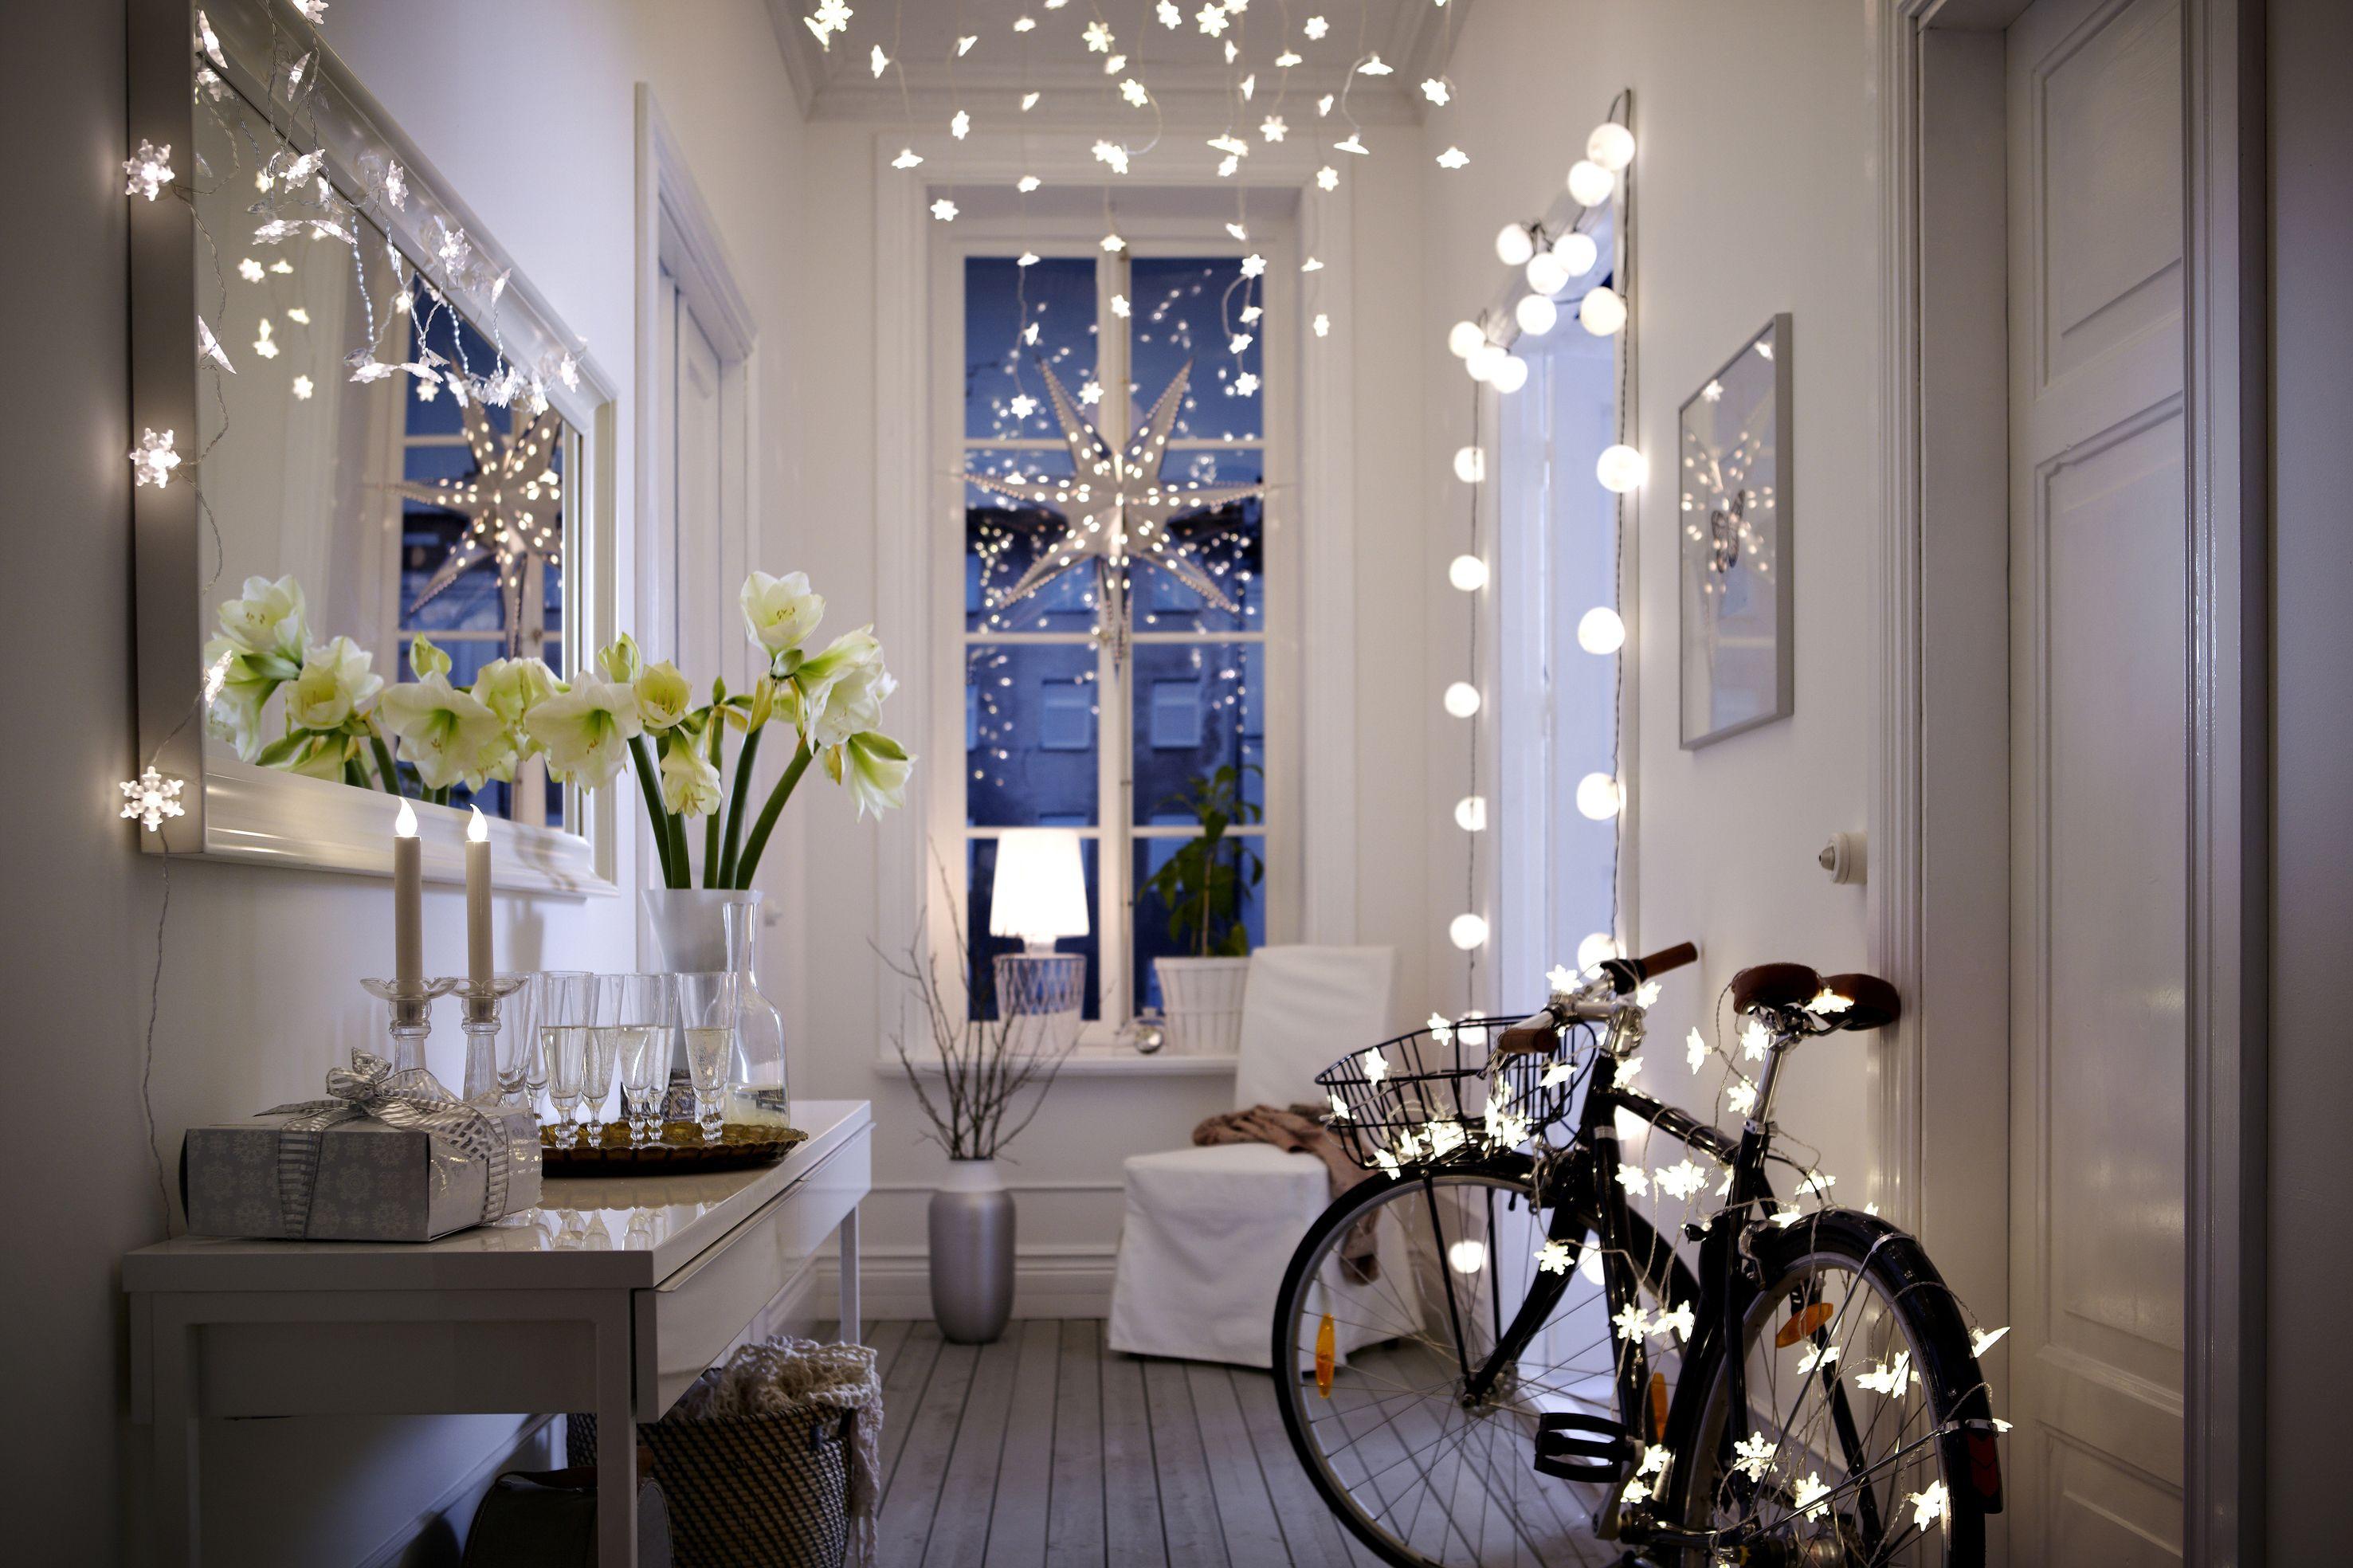 Ikea String Lights Pleasing Xmas Lighting With Ikea For The Home  Pinterest  Interiors Design Decoration